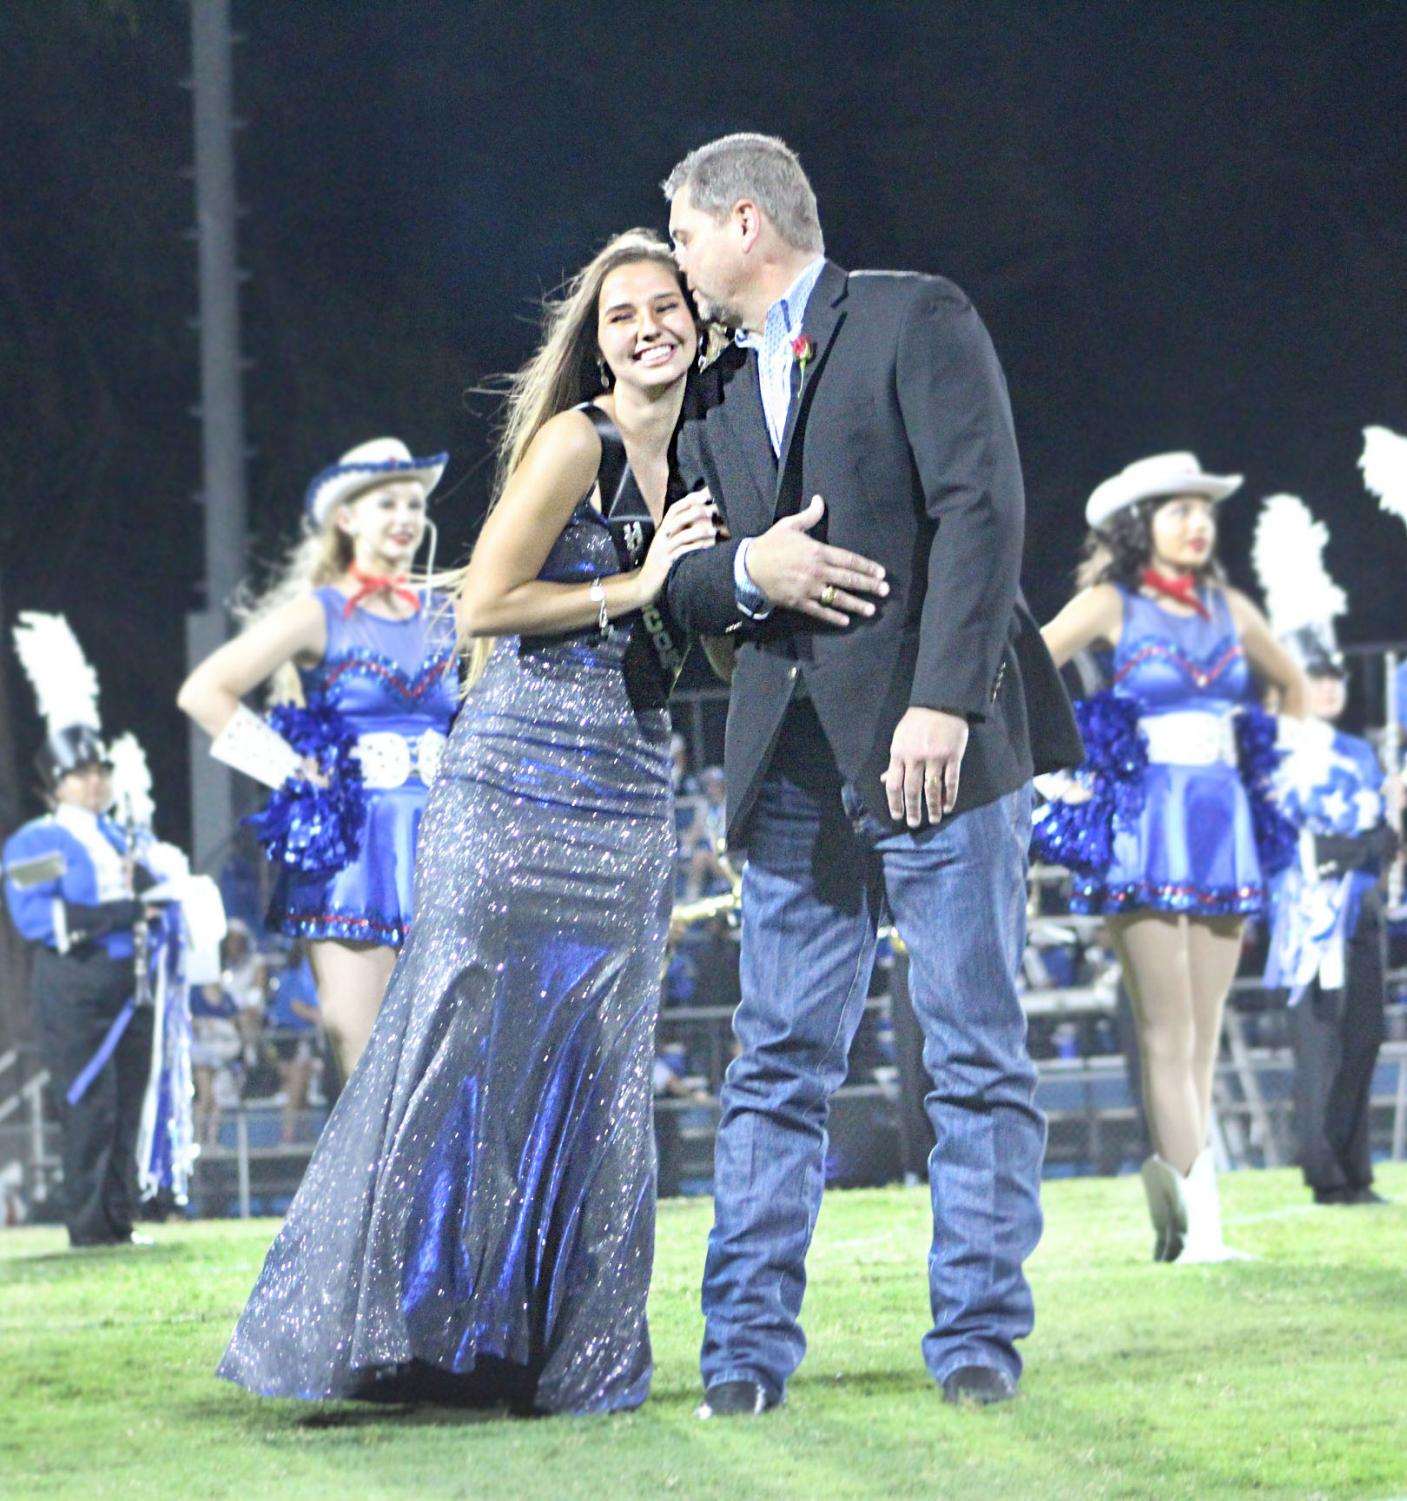 Jessica Ball hugs Sid Ball as she is announced homecoming queen.